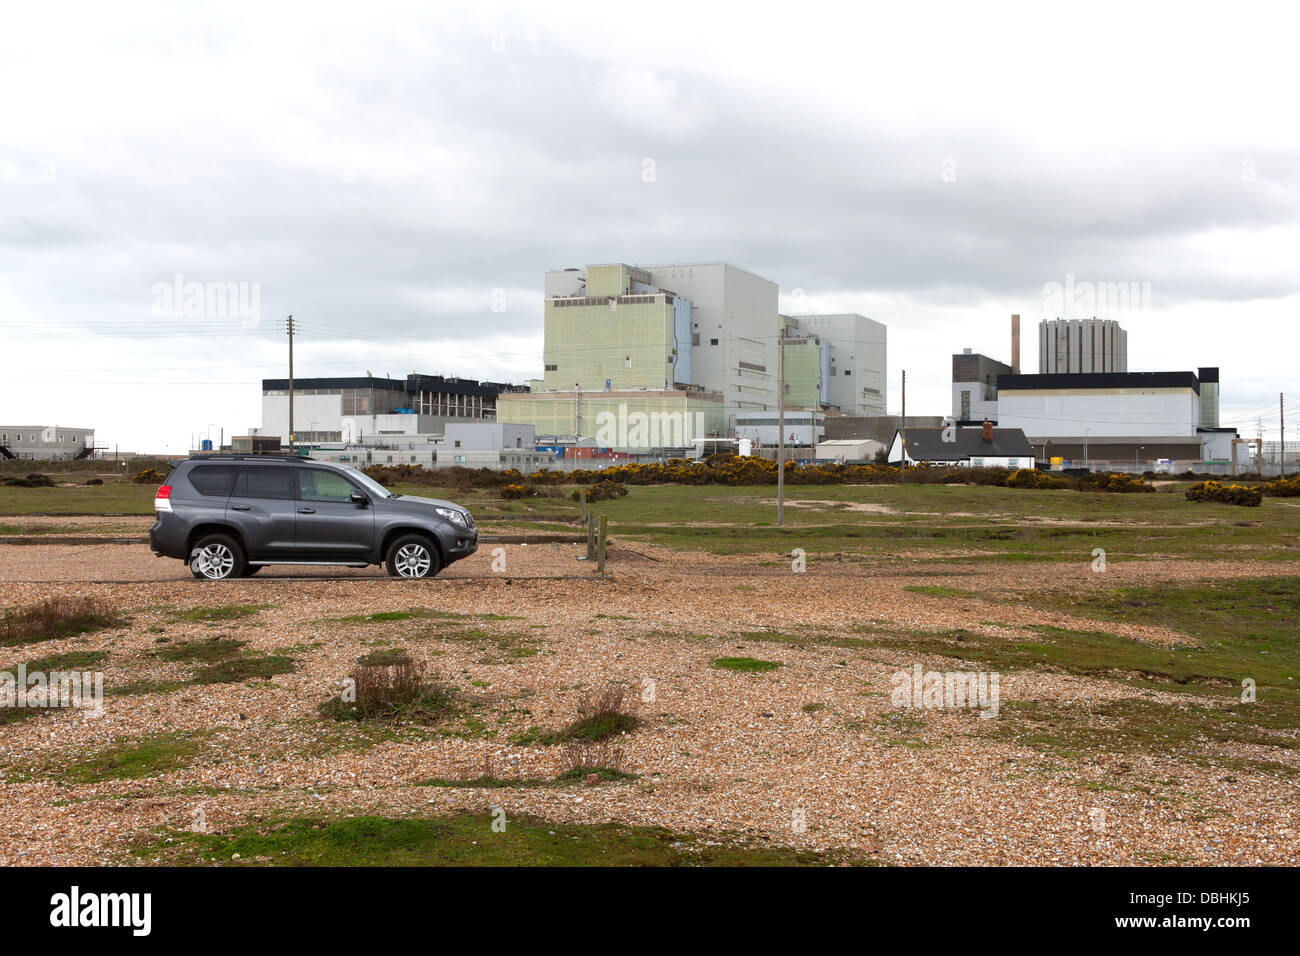 Nuclear Power Station at Dungeness Kent England - Stock Image